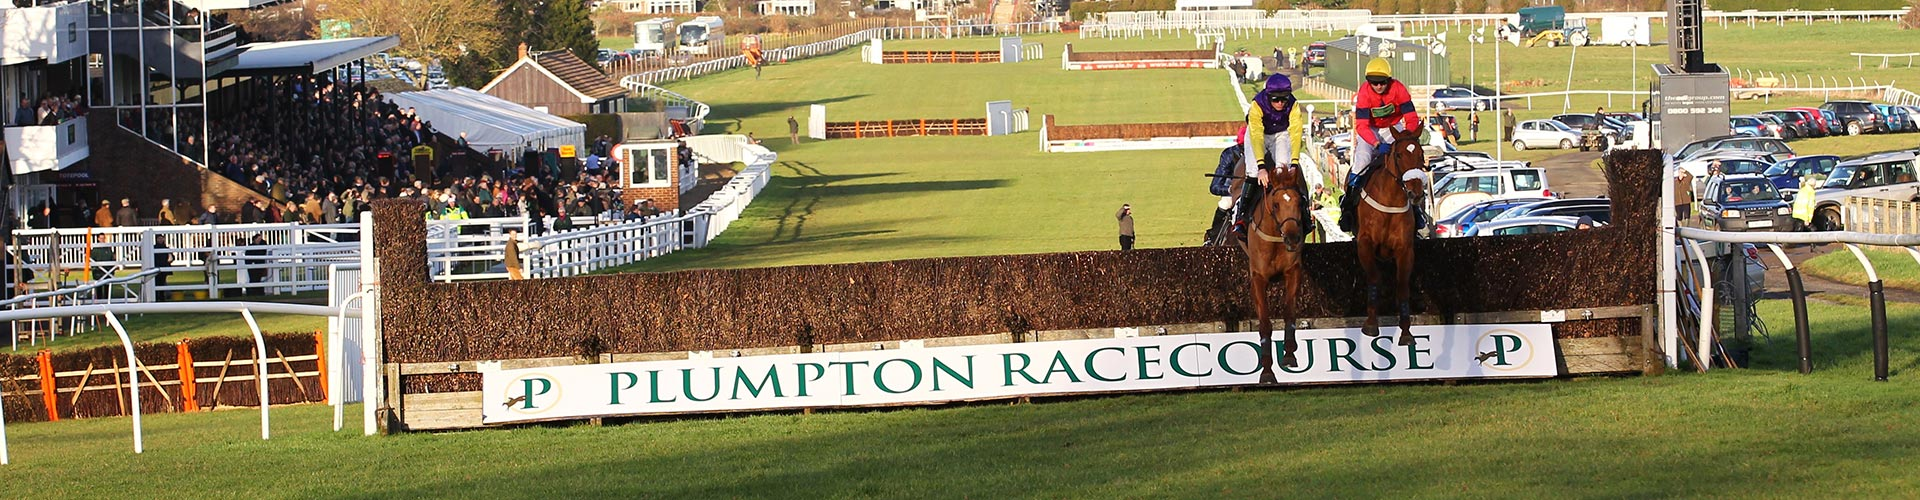 Racing information at Plumpton Racecourse